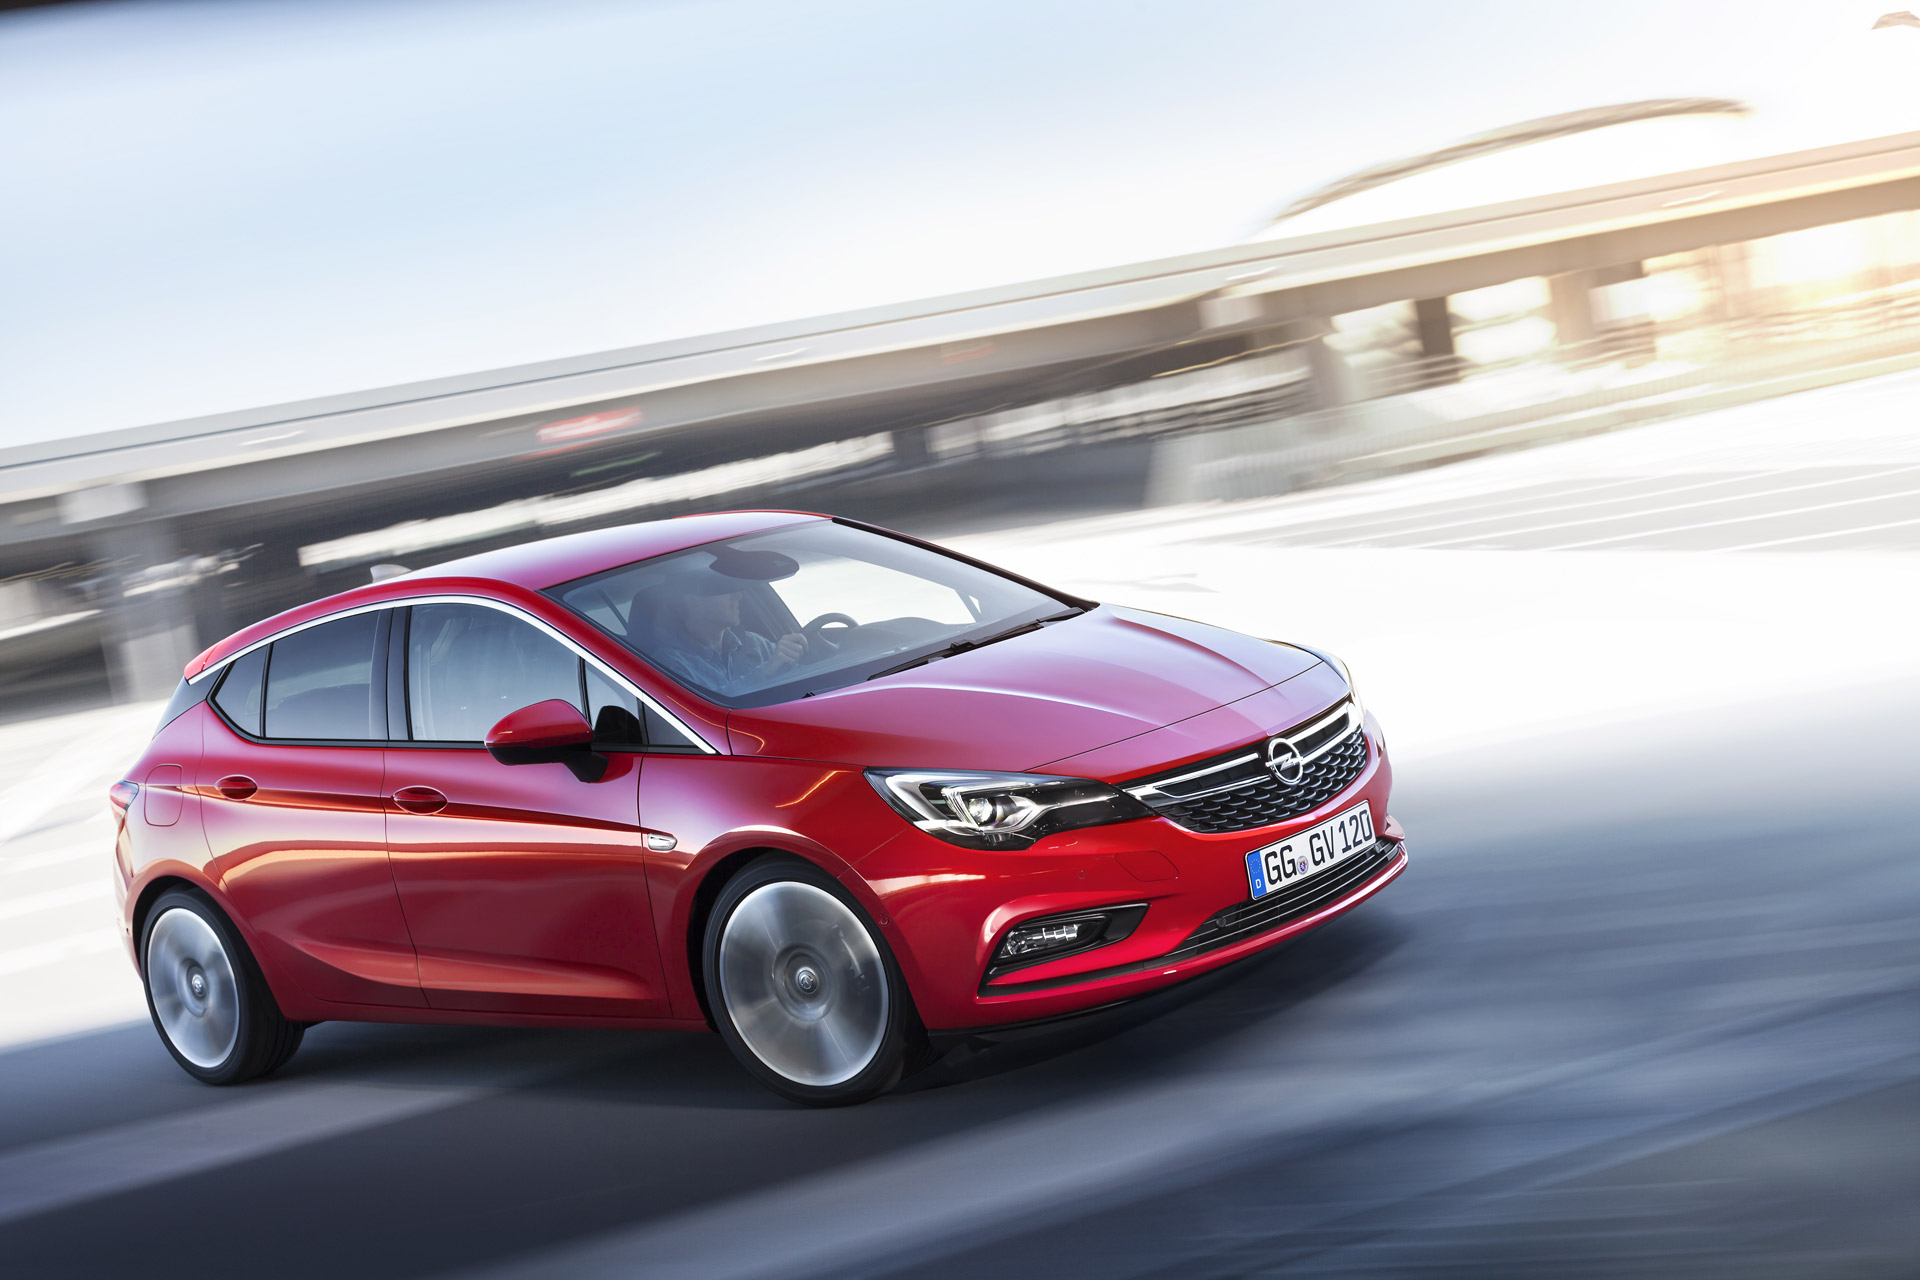 2016 Opel Astra Revealed Ahead Of Frankfurt Auto Show Debut